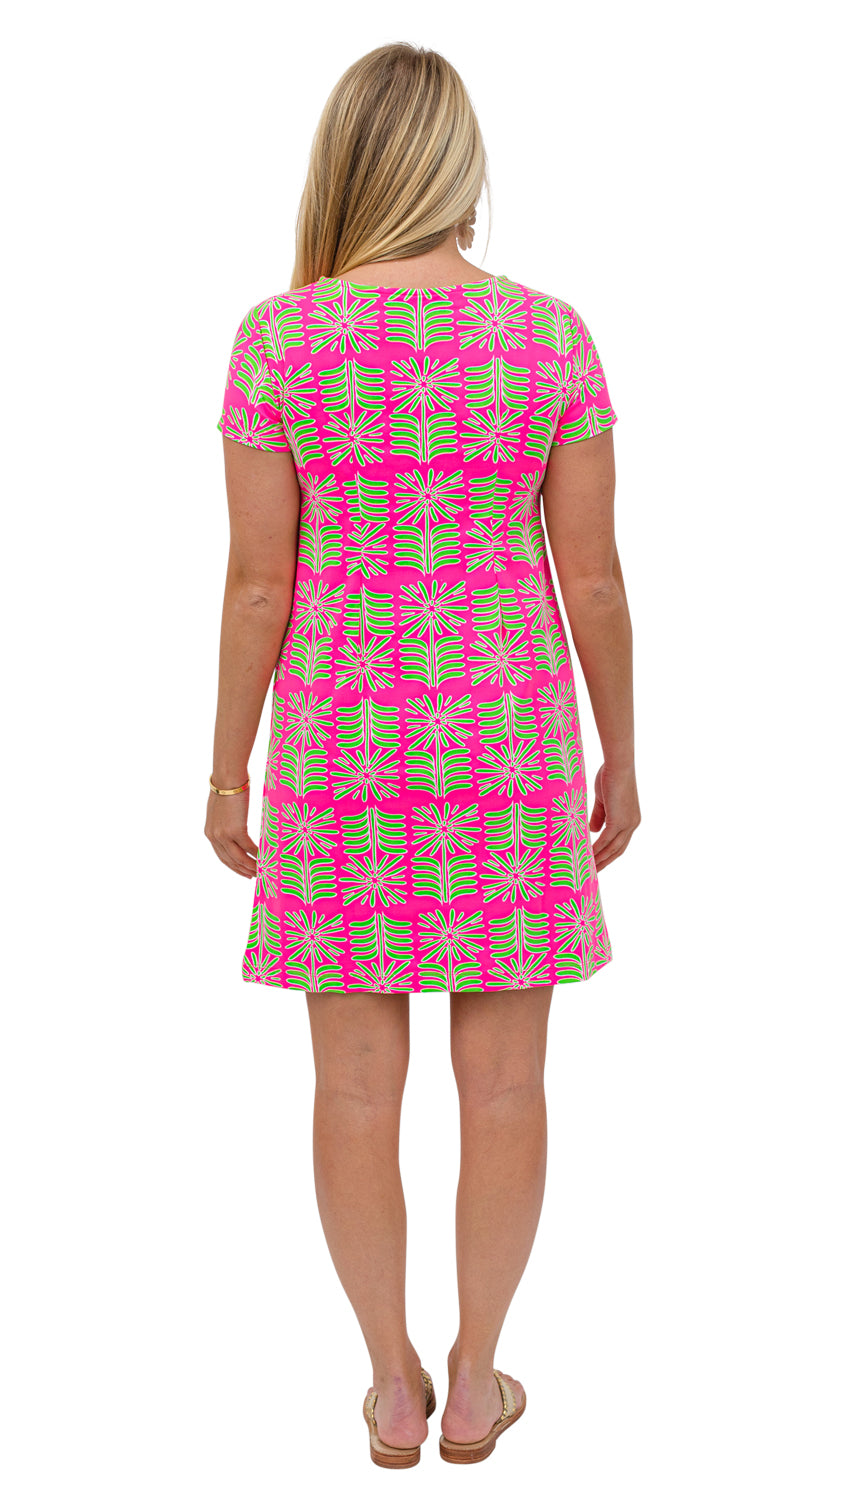 Marina Dress - Pink/Green Montauk Daisy